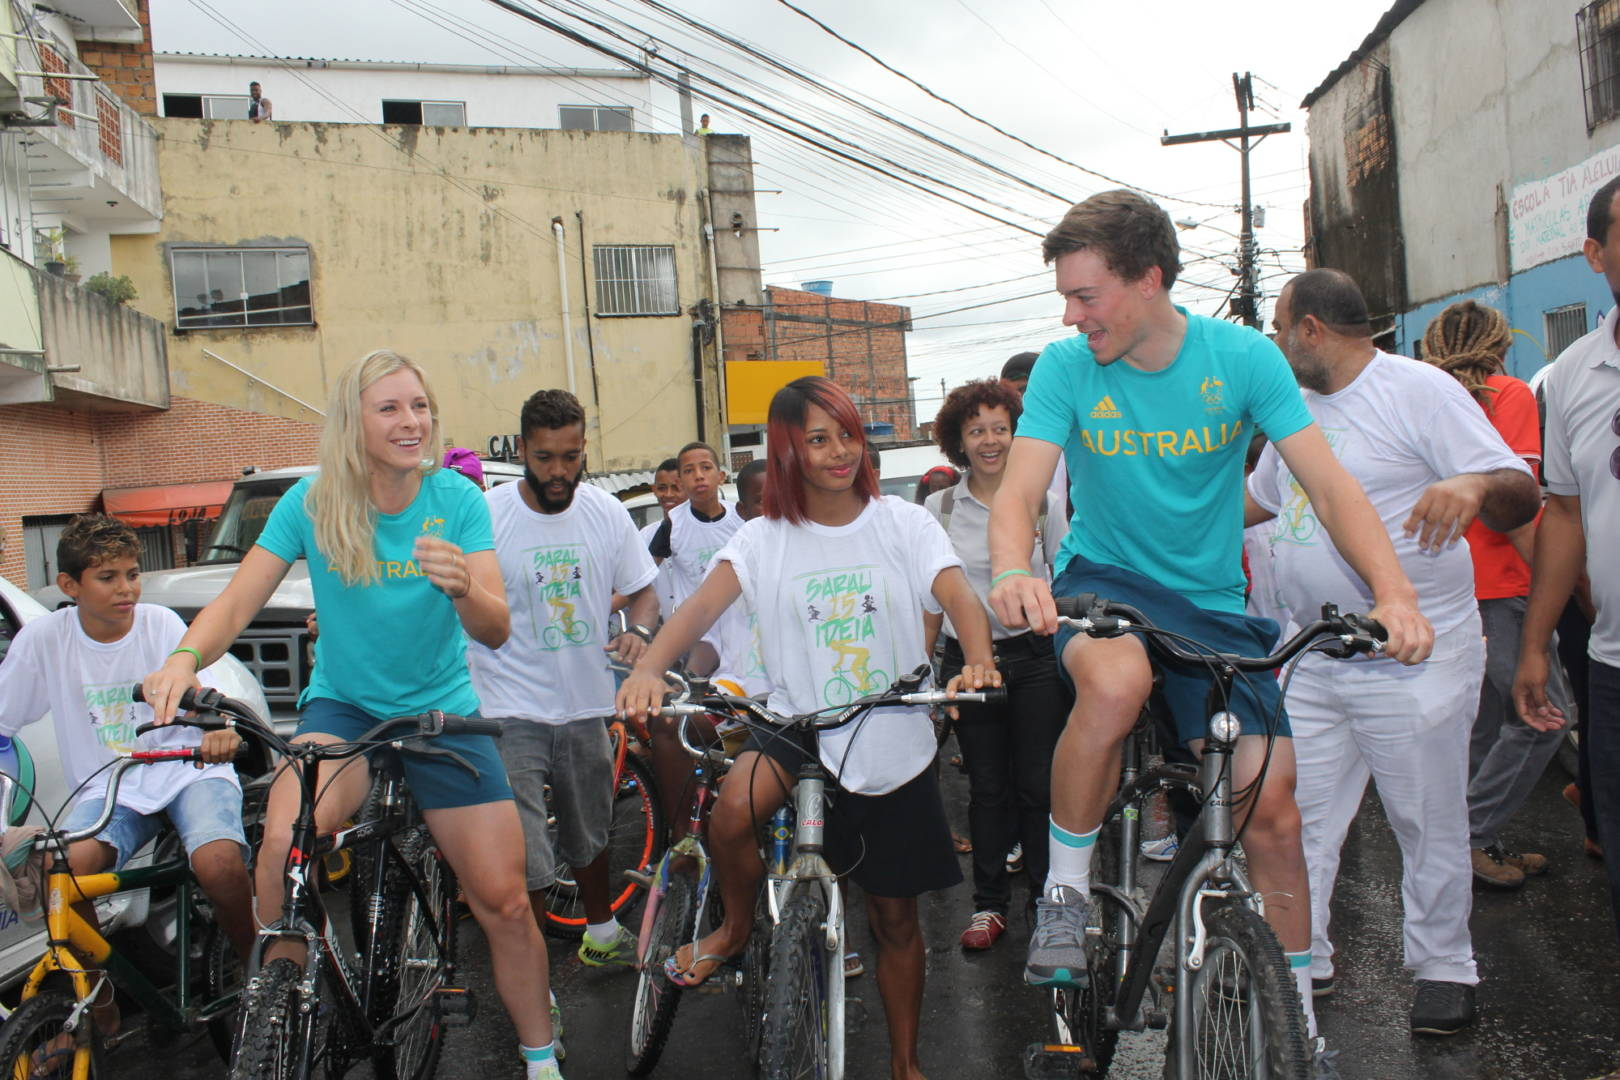 Olympian cyclists Annette and Alex Edmondson ride bikes with World Vision sponsored child Vanessa and her youth group in Brazil.